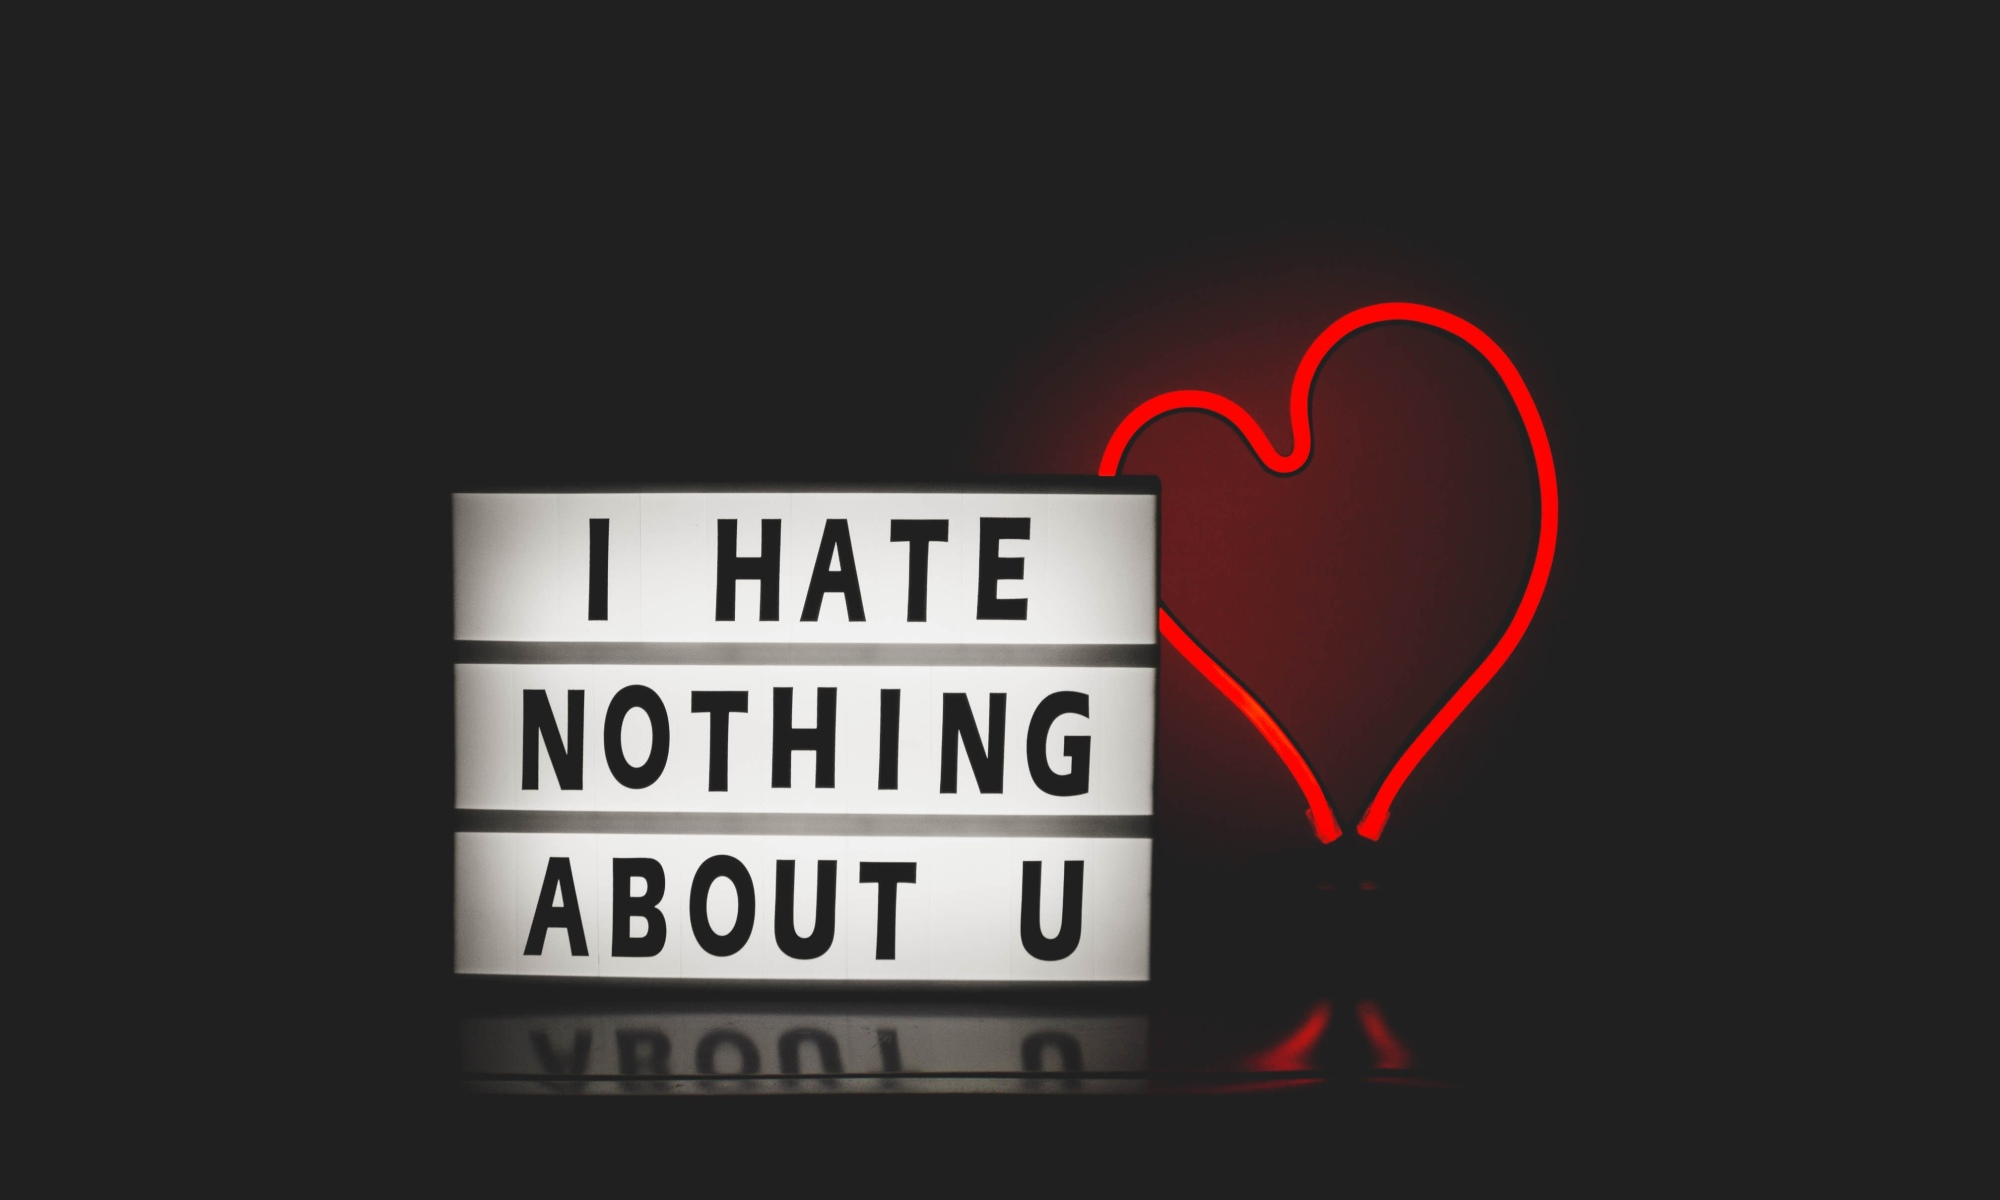 I hate nothing about you sign